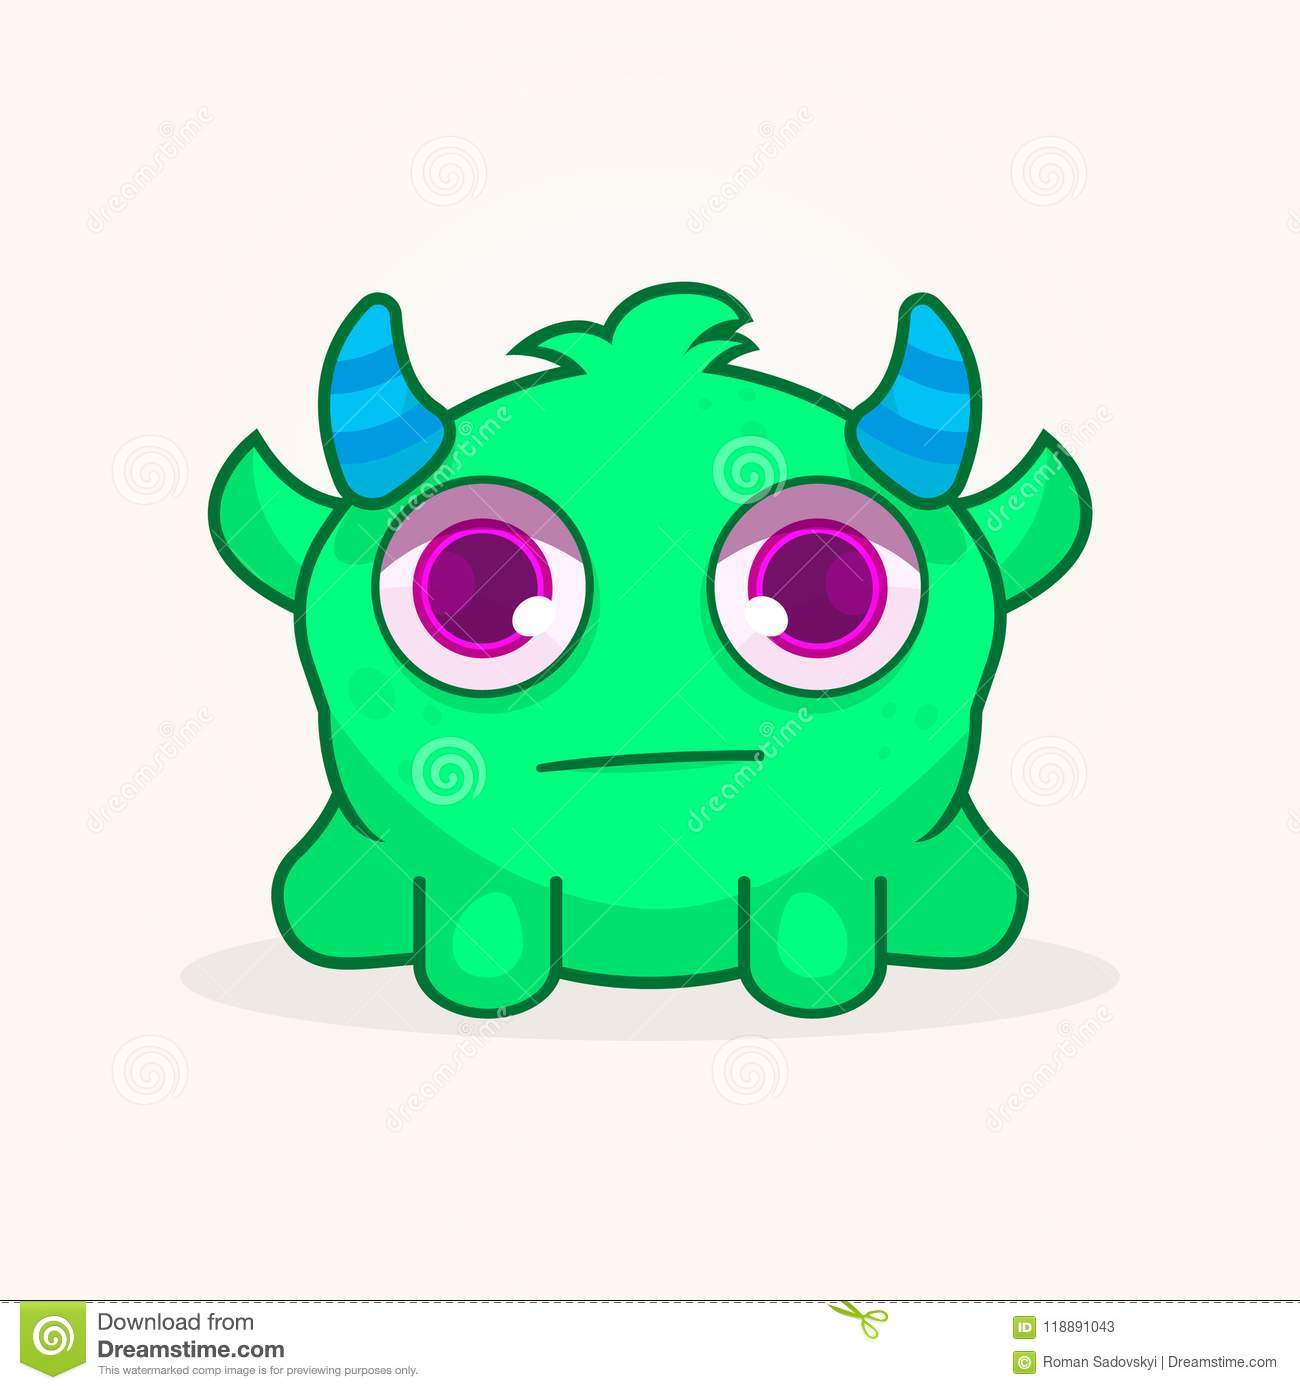 Cute Cartoon Monster Confused Monster Illustration Stock Vector